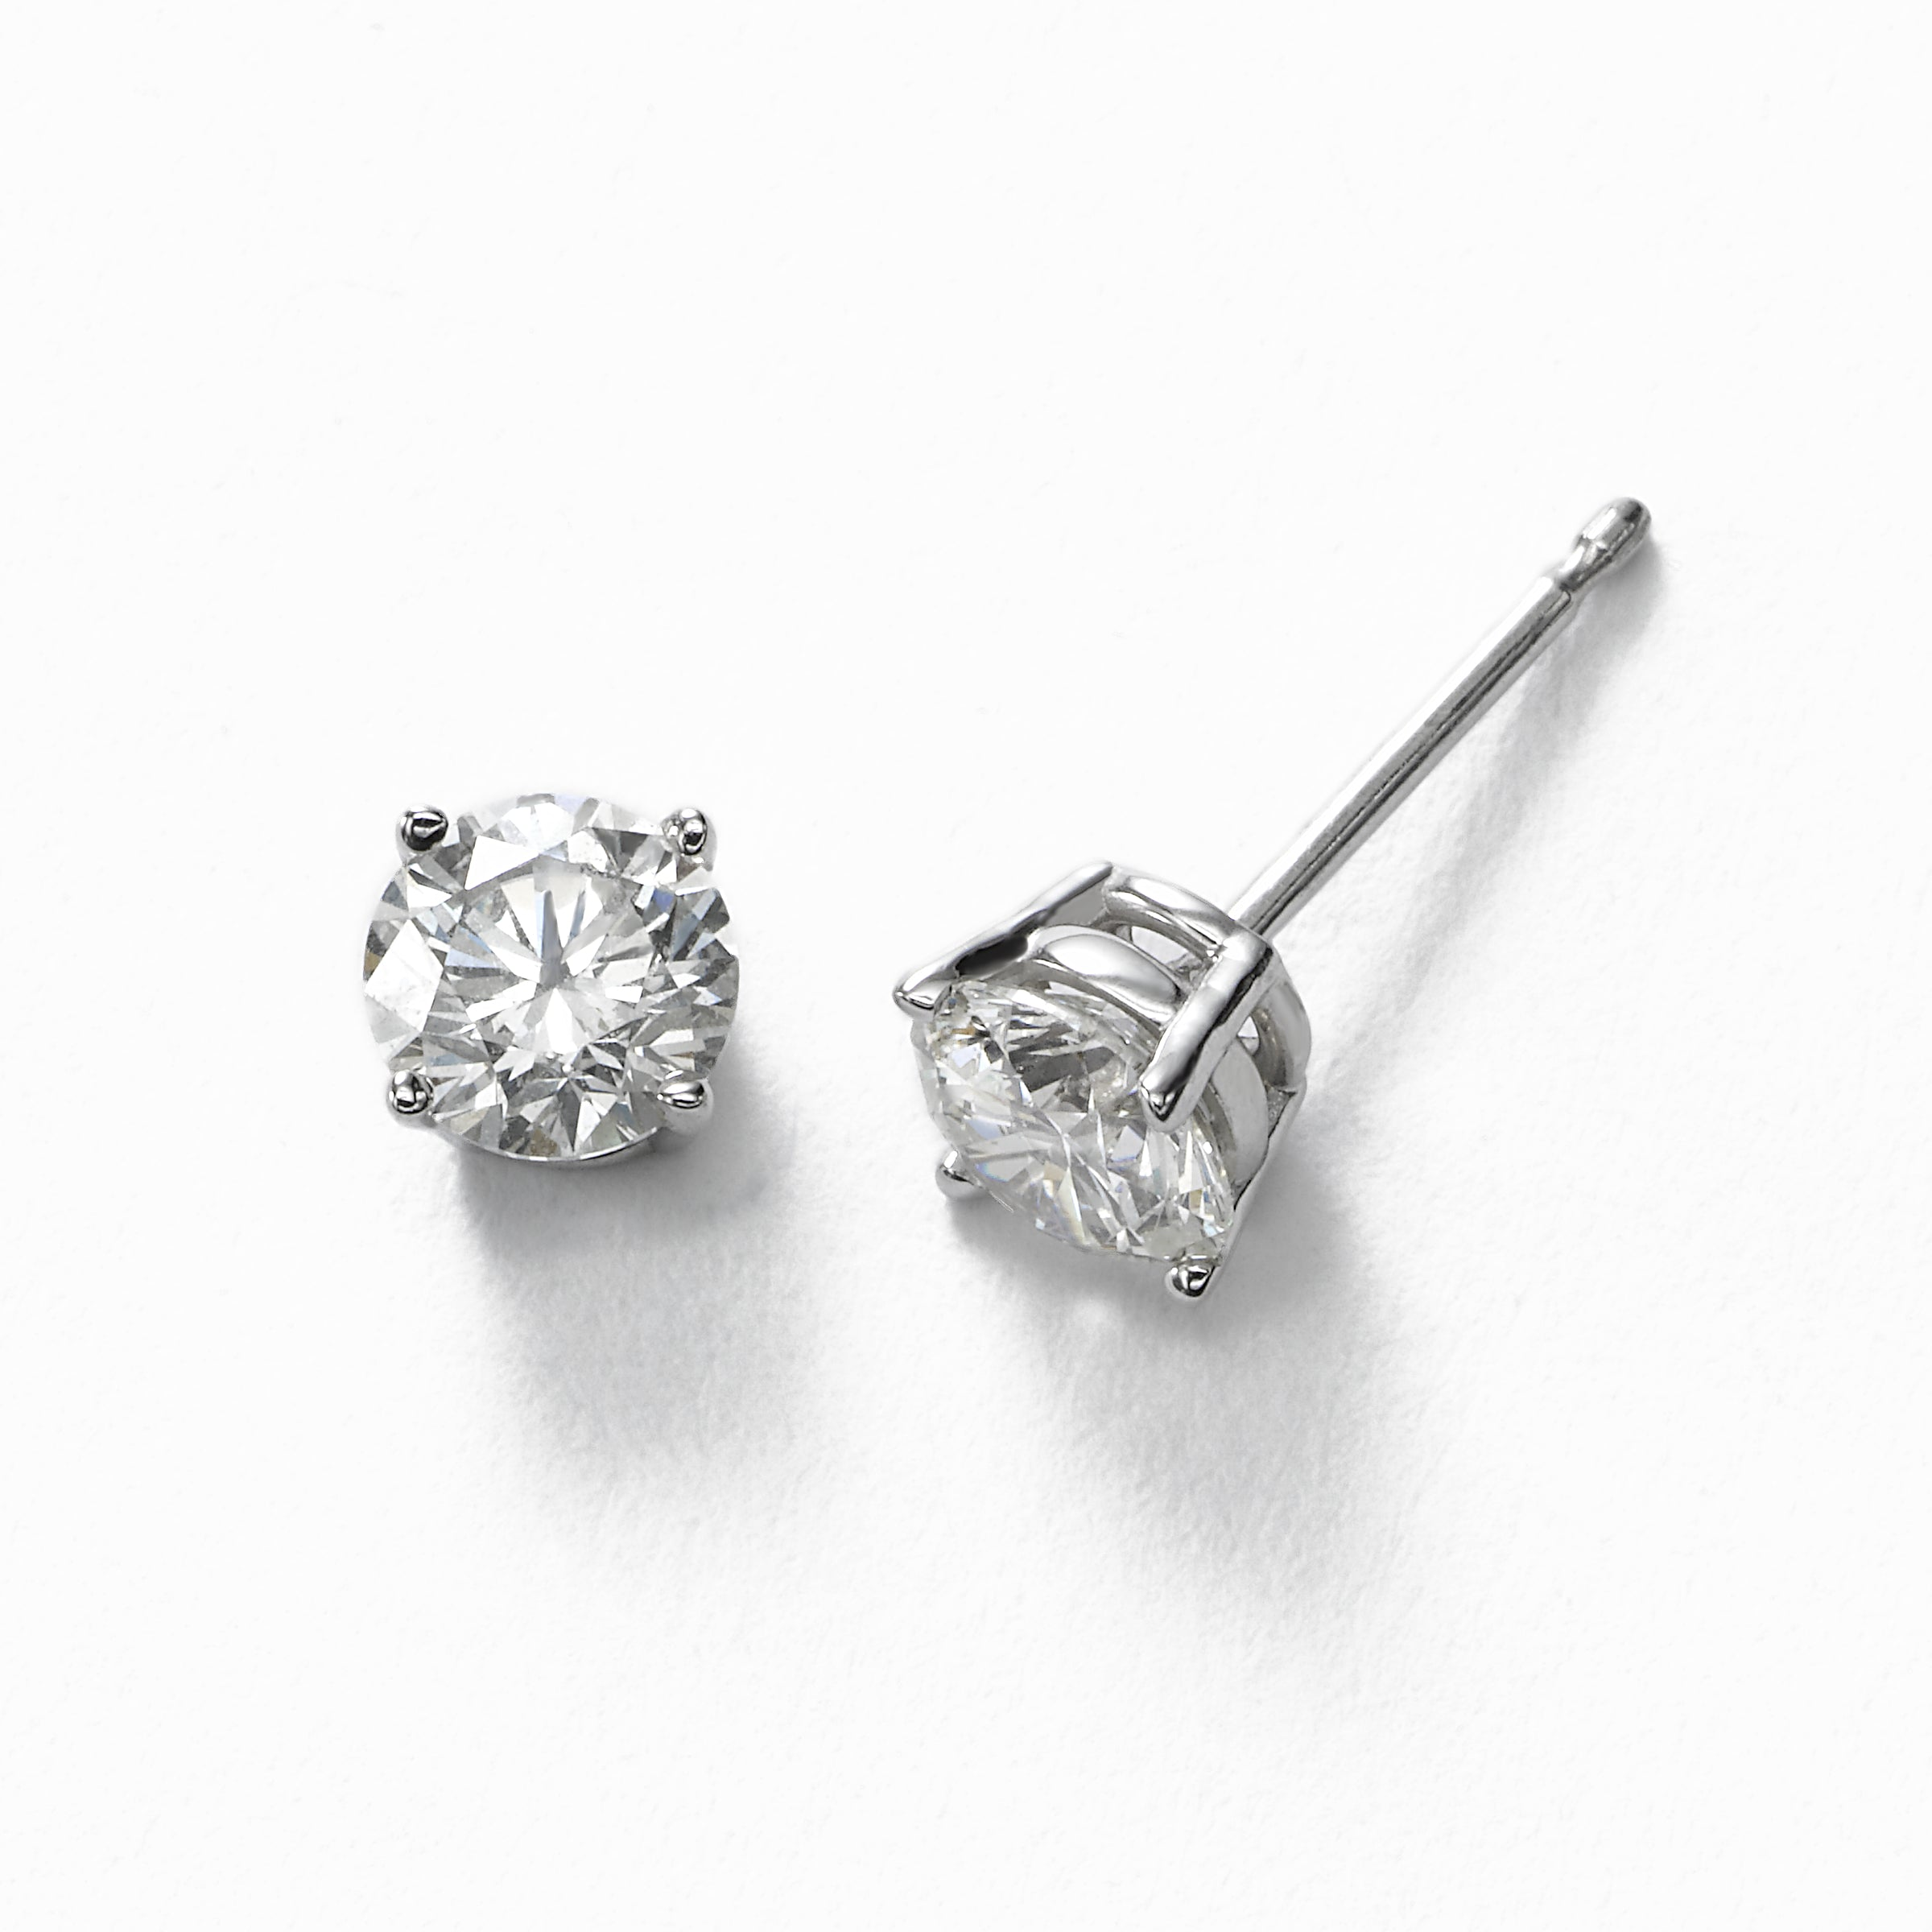 Diamond Stud Earrings, 1.00 Carat total, H/I-SI2, 14K White Gold